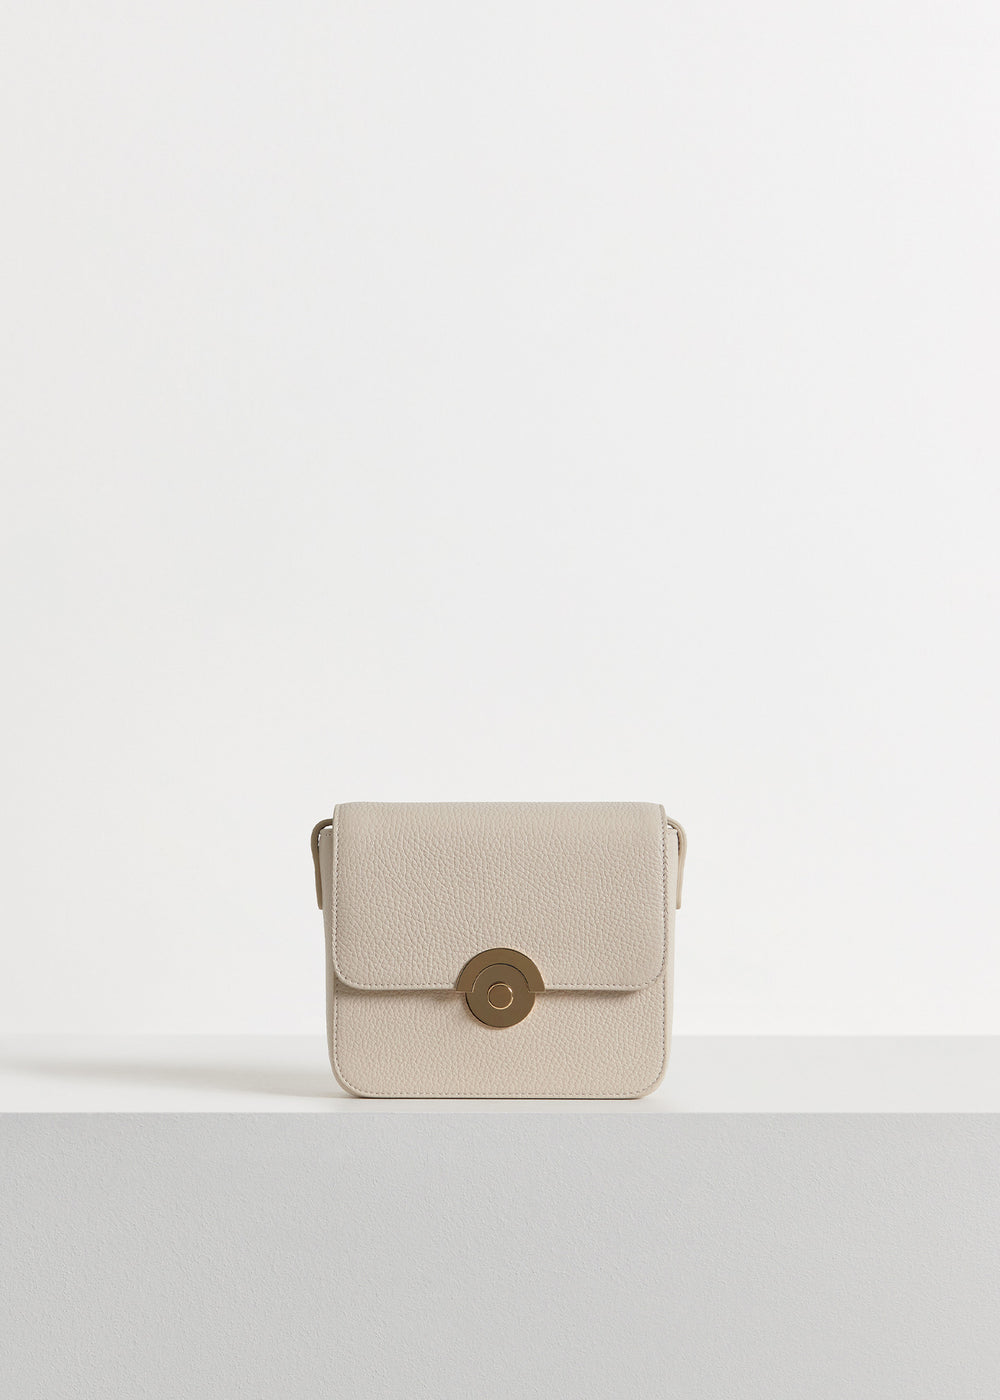 Small Box Bag in Pebbled Leather - Olive in Ivory by Co Collections